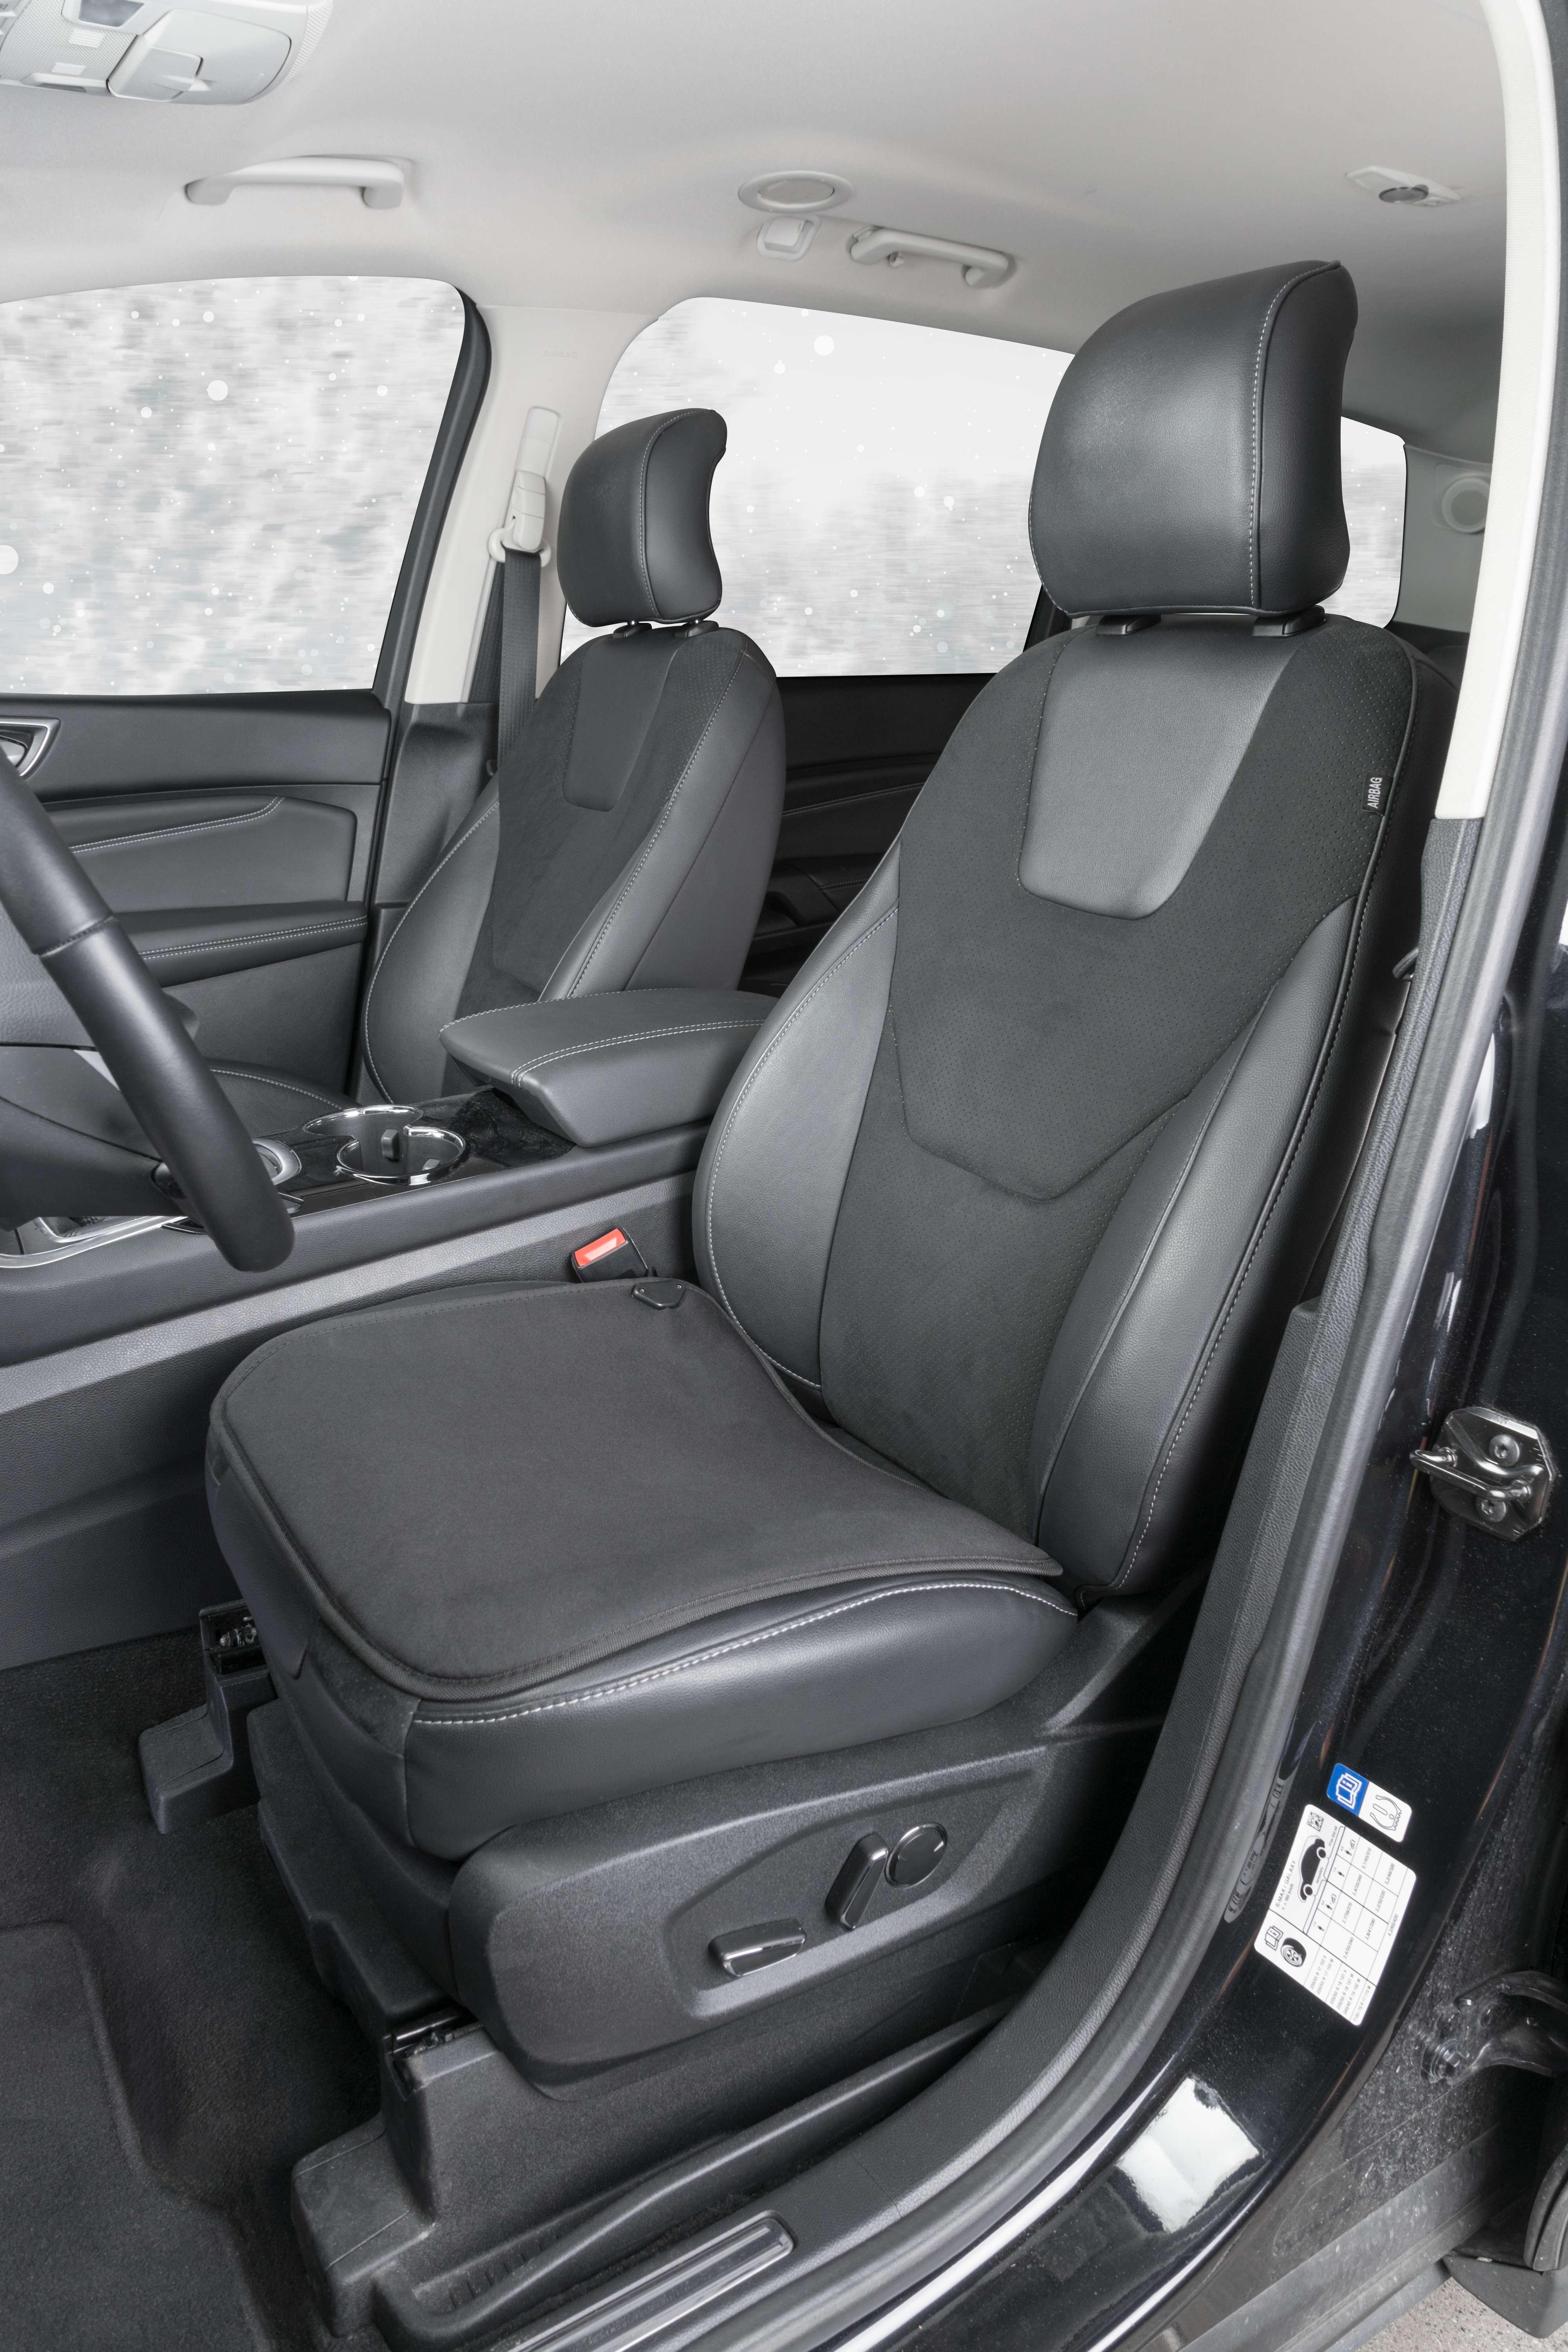 Heated Seat Cover WALSER 16649 rating